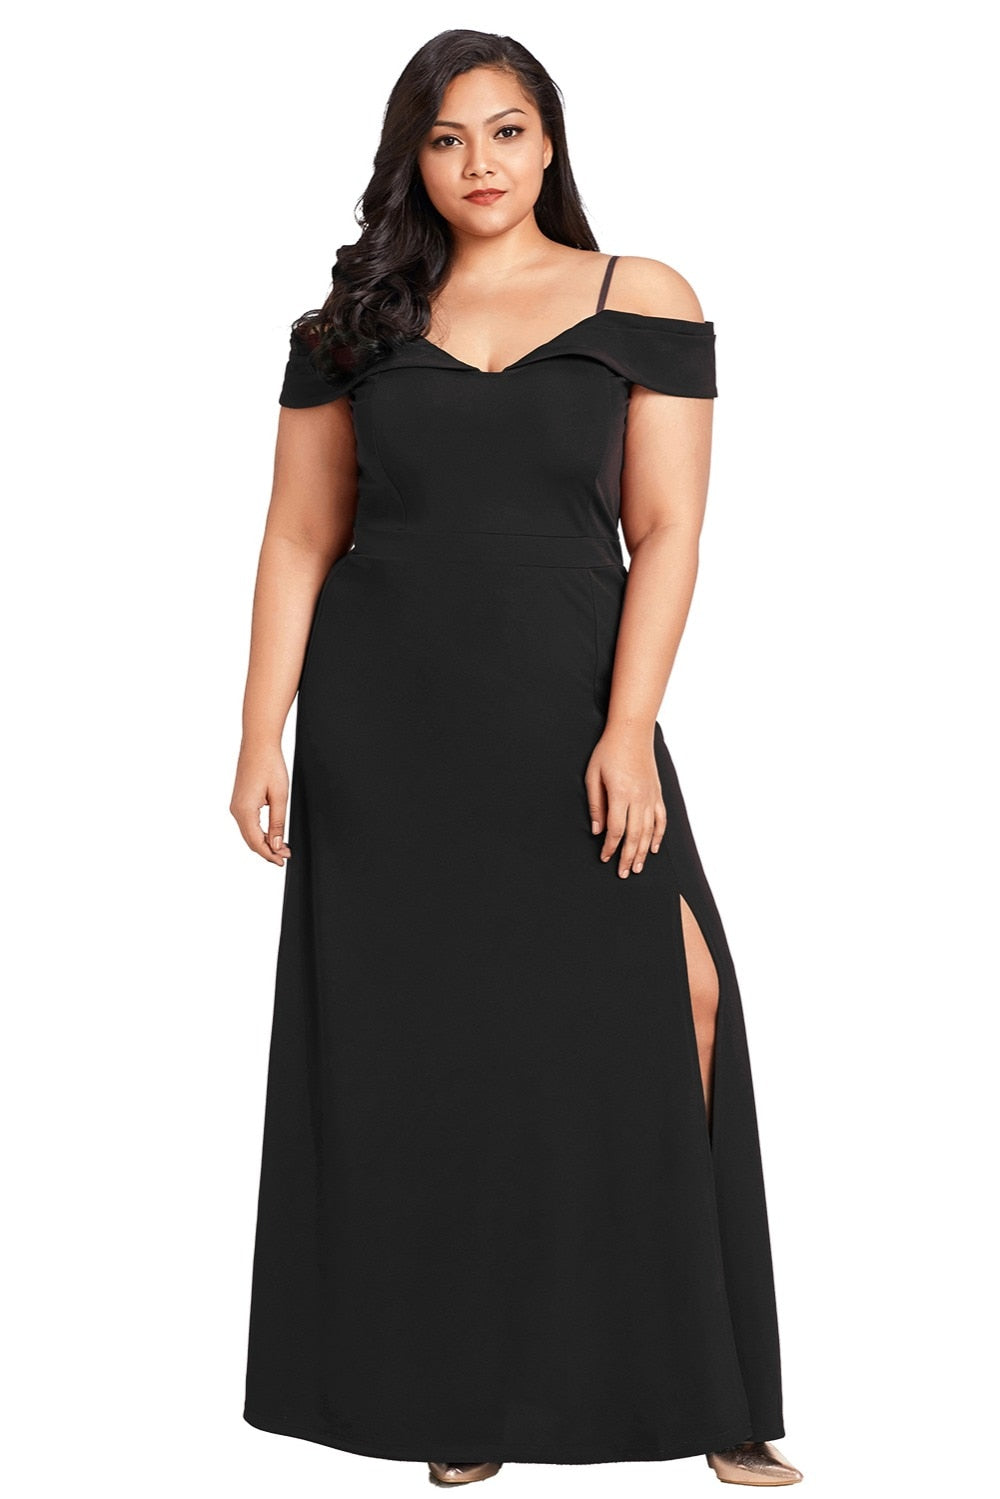 High-Thigh Split Off Shoulder Plus Size Party Maxi Woven Trends